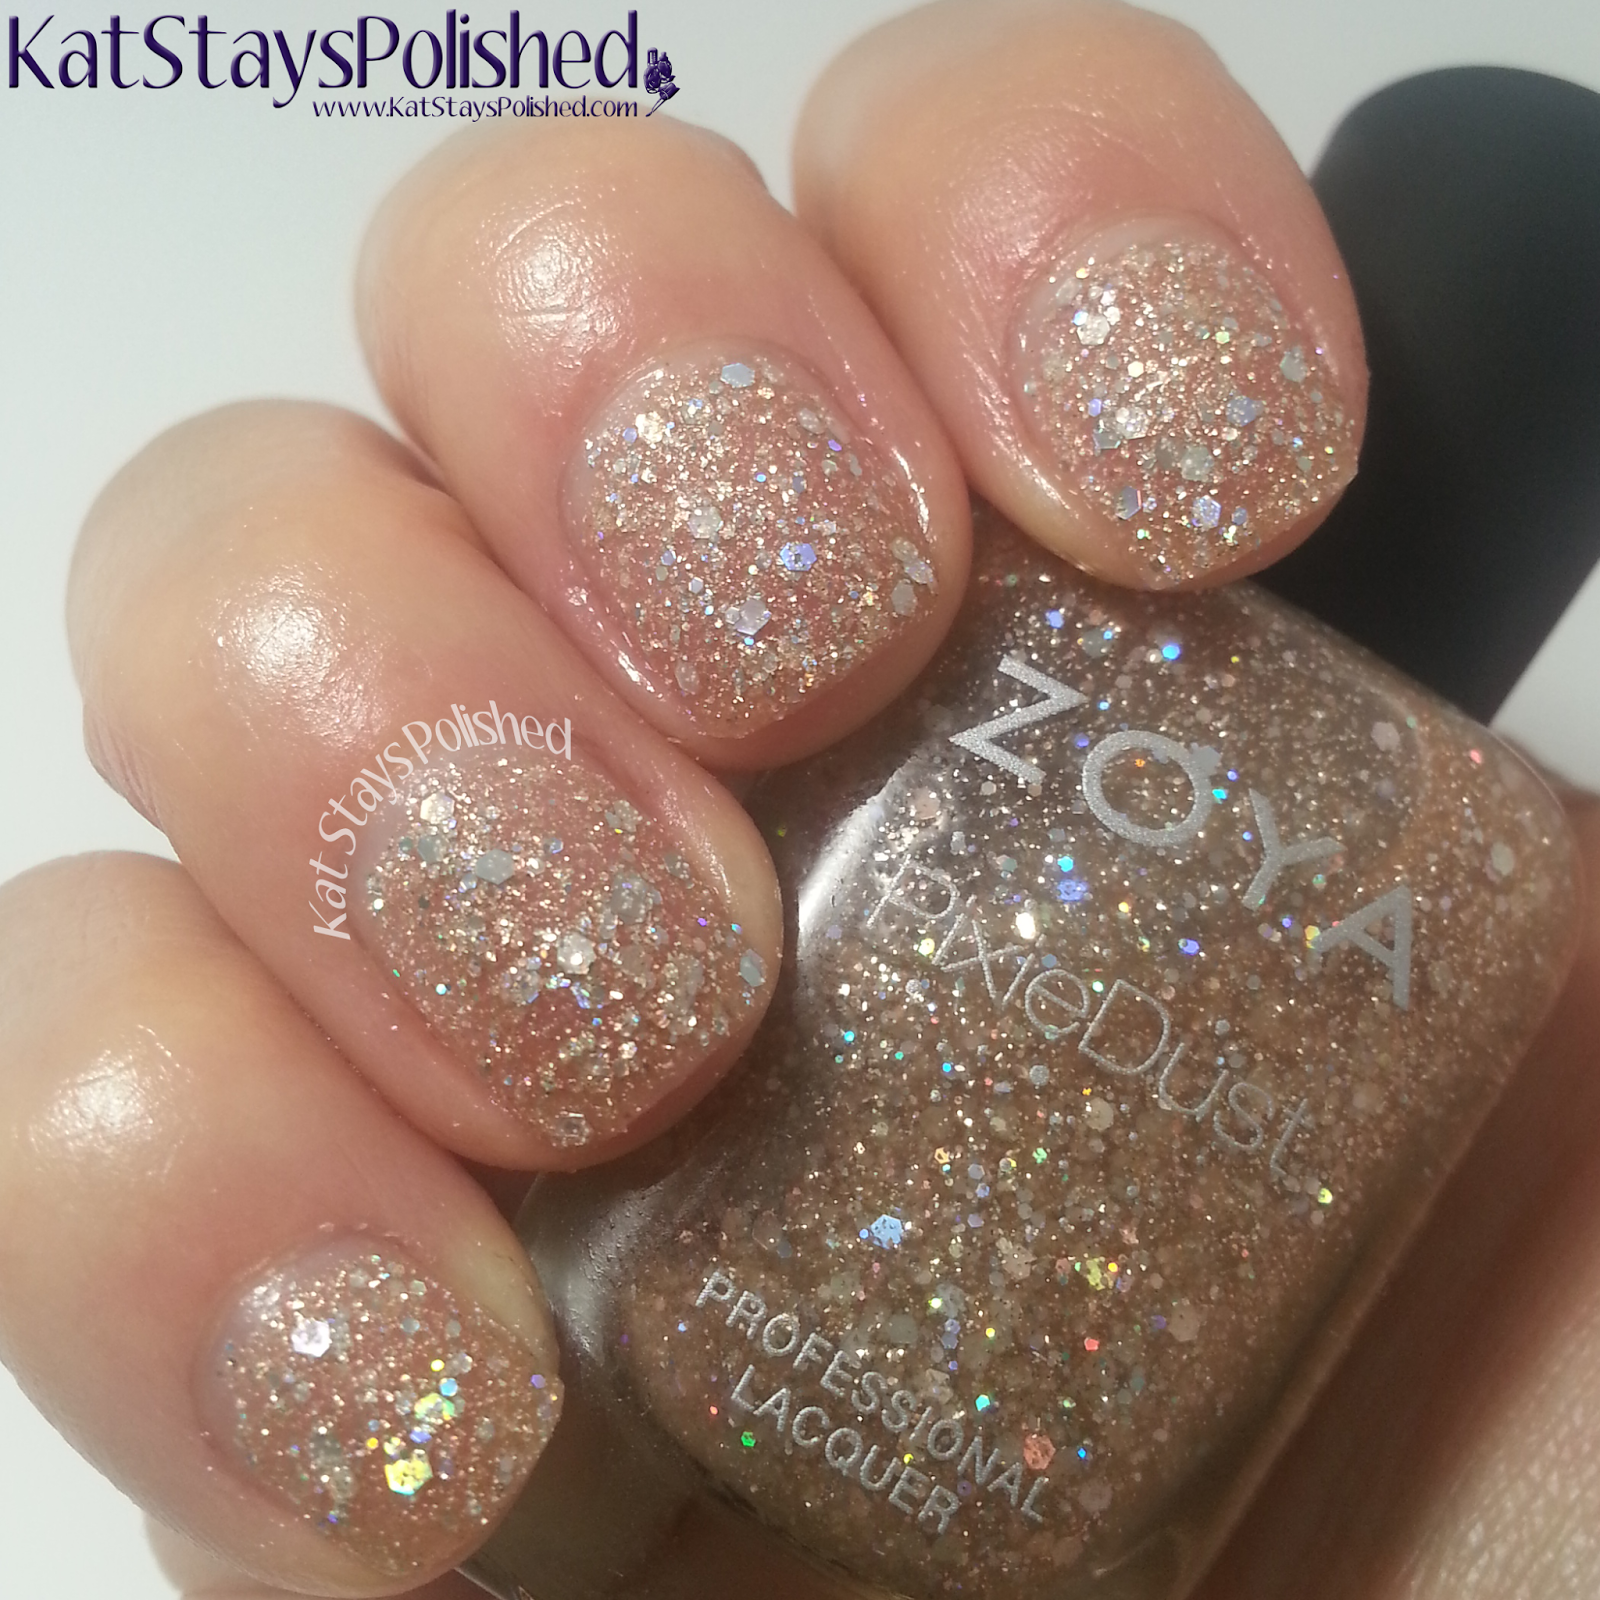 Zoya Magical Pixies - Summer 2014 - Bar | Kat Stays Polished